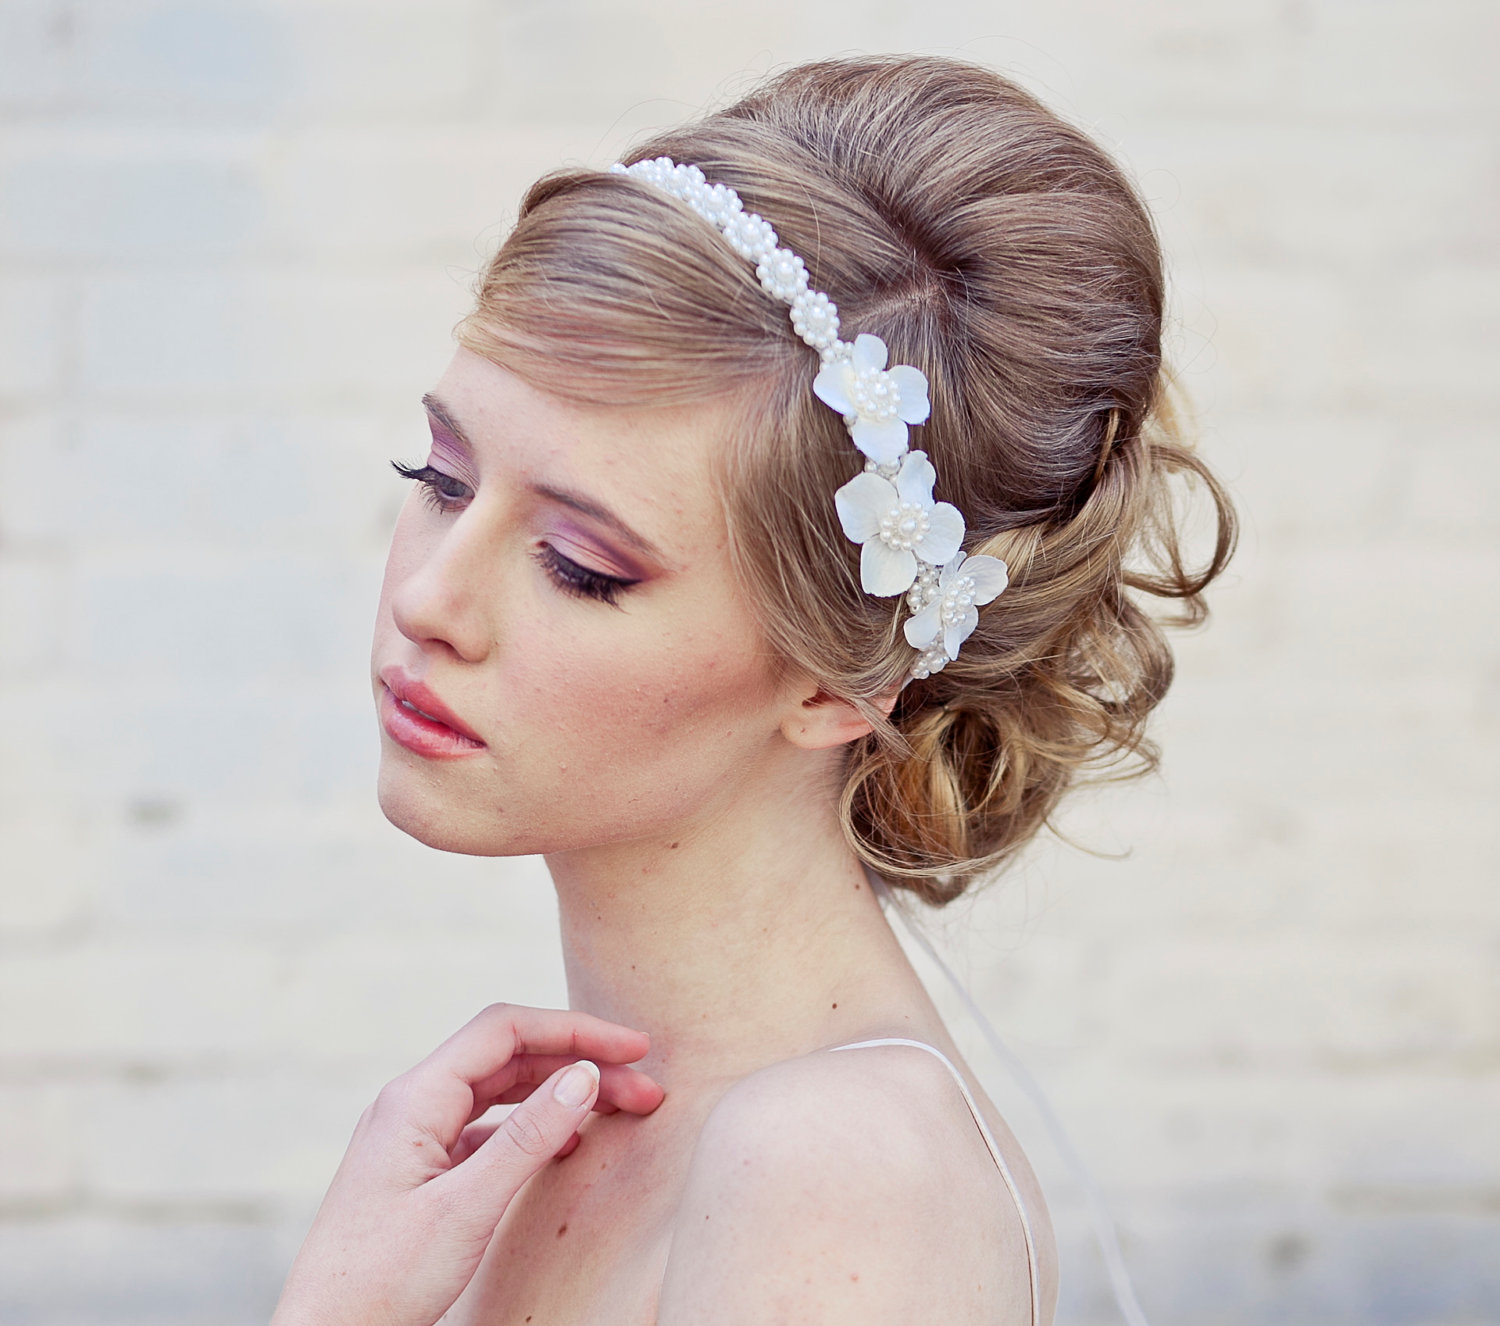 Wedding Hairstyle Beach: The Best Beach Wedding Day Hairstyles For Women